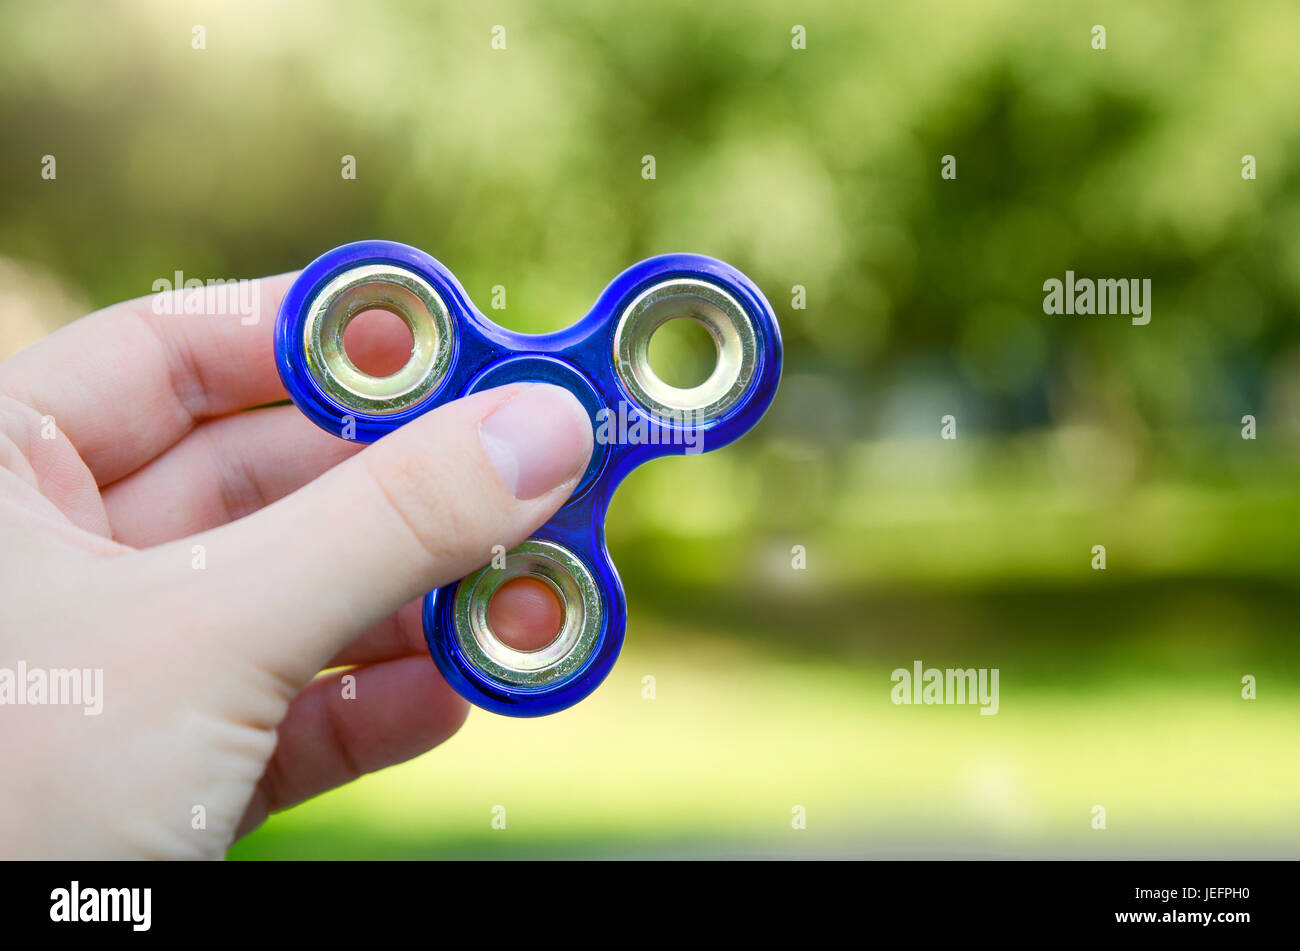 Fidget spinner in hand close up. spinner fidget child stress adhd attention fad boy concept - Stock Image